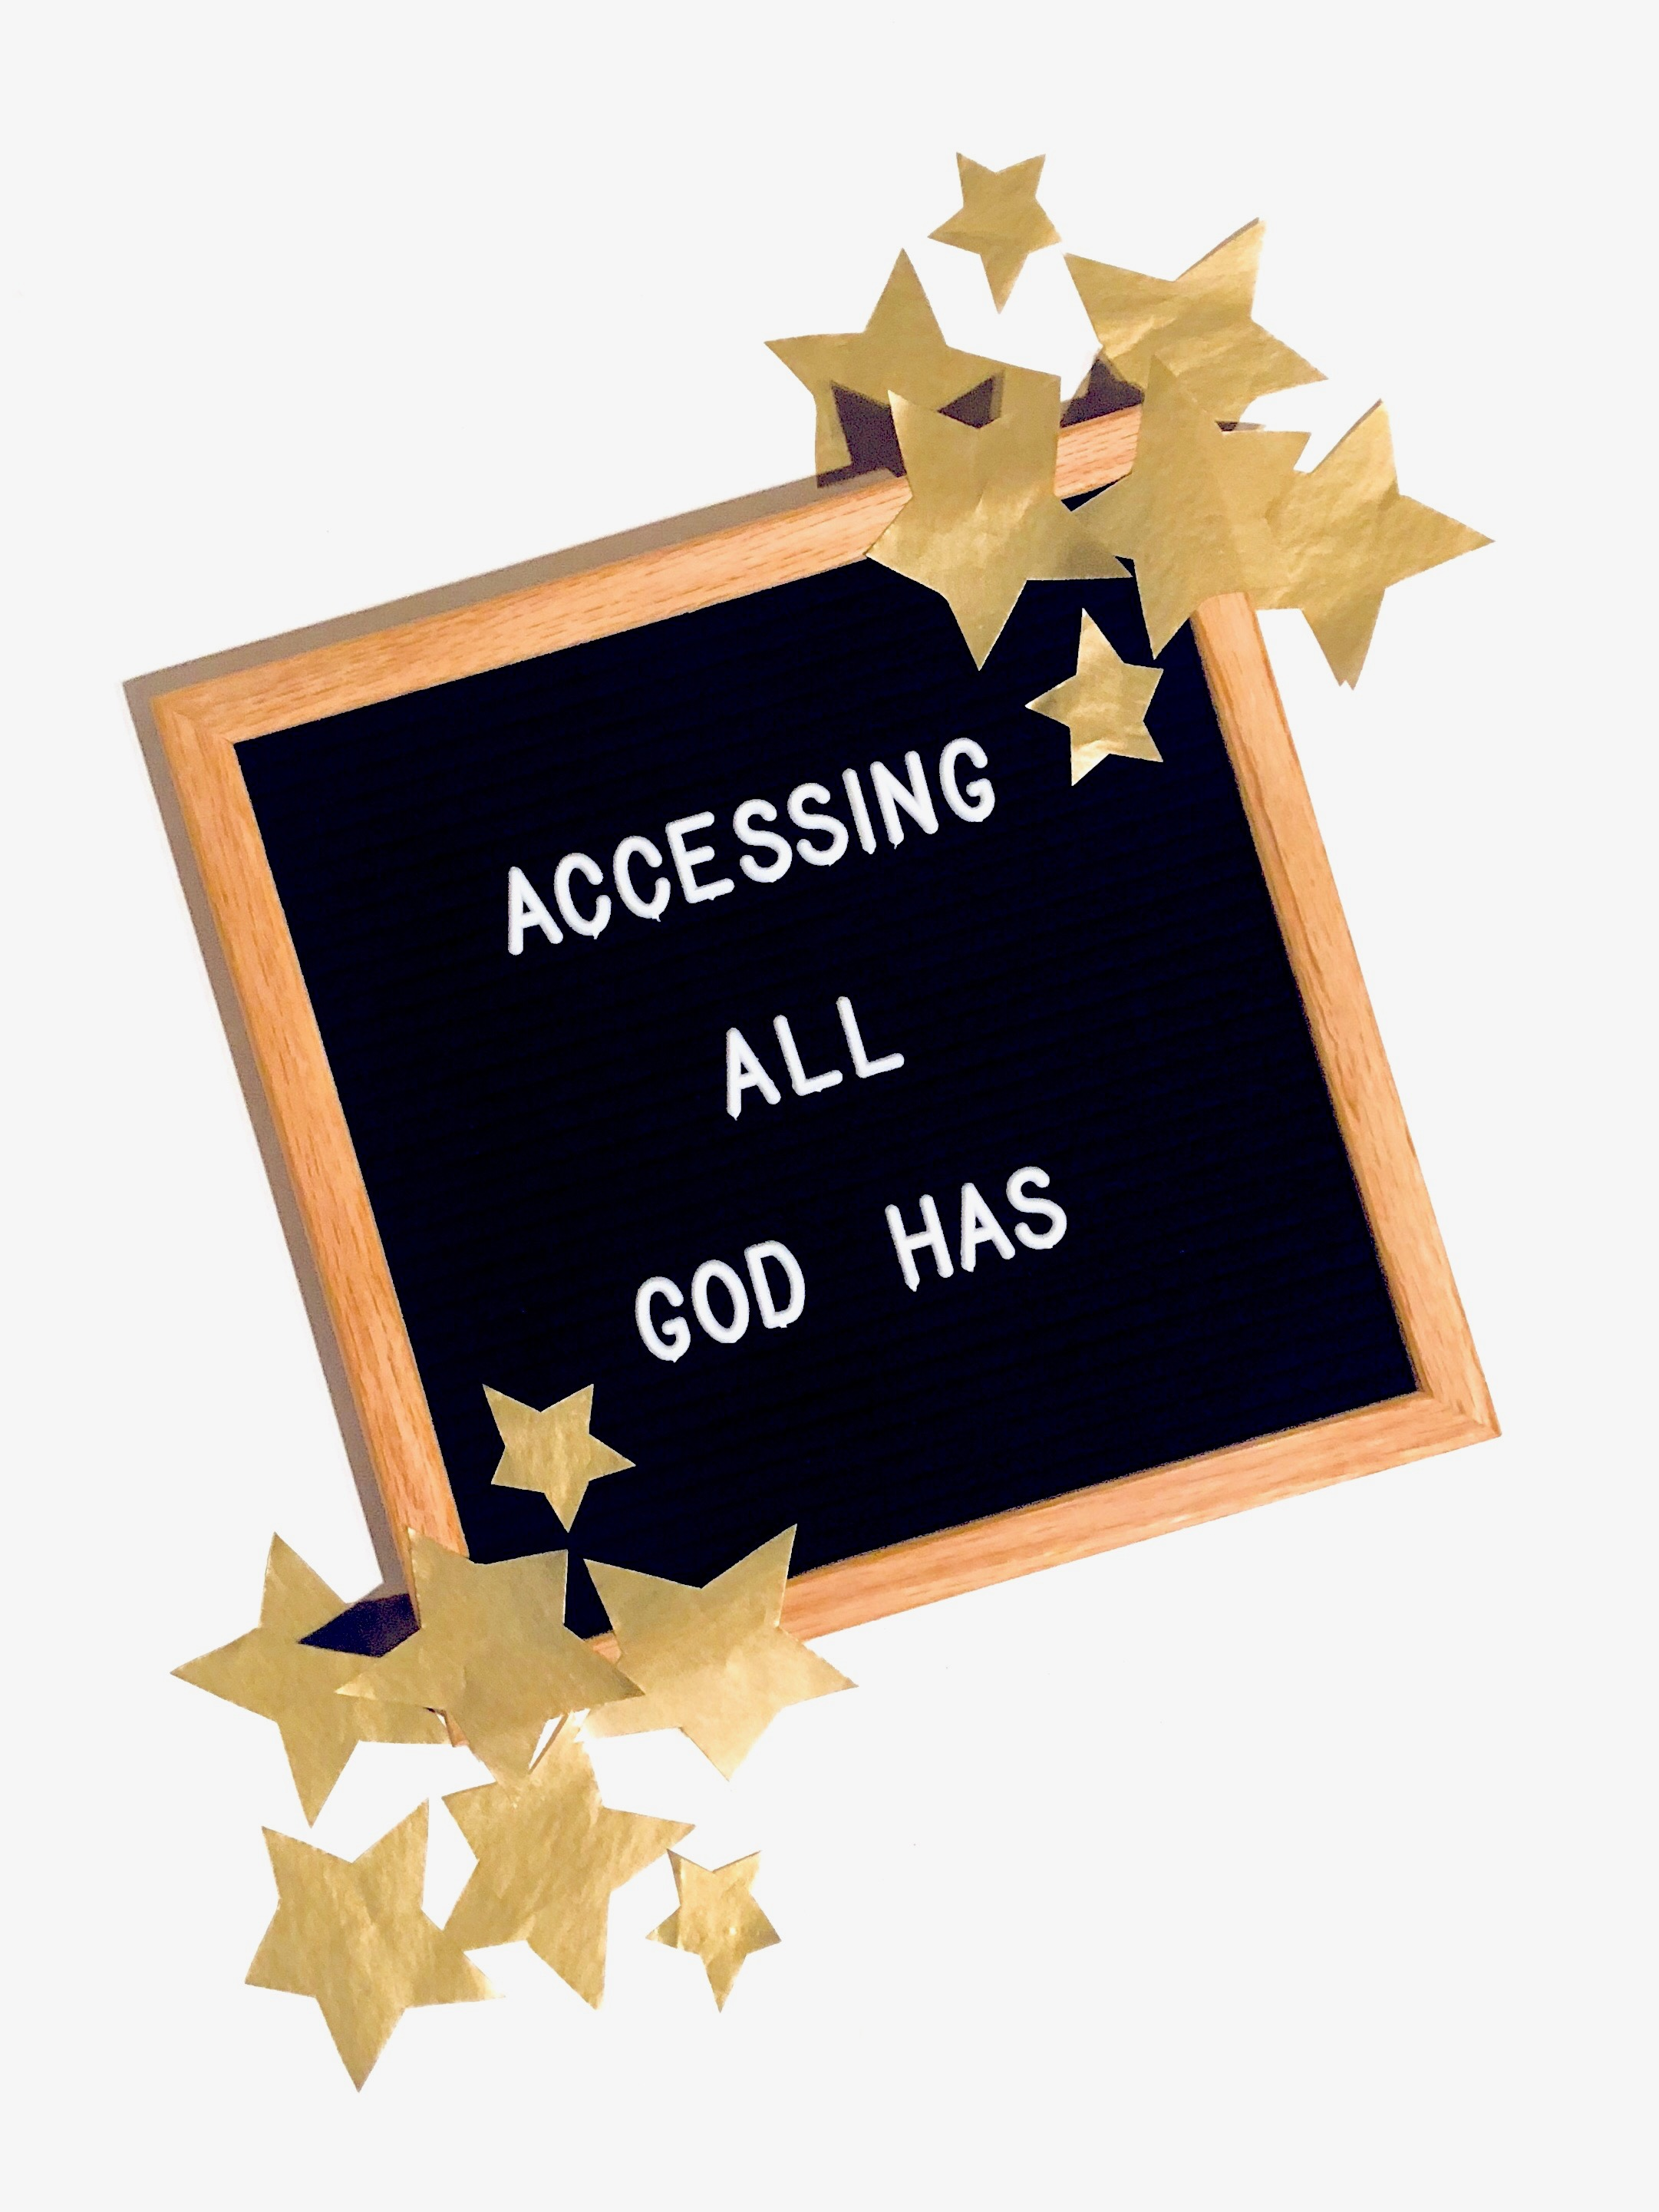 Accessing all God has - in due time blog